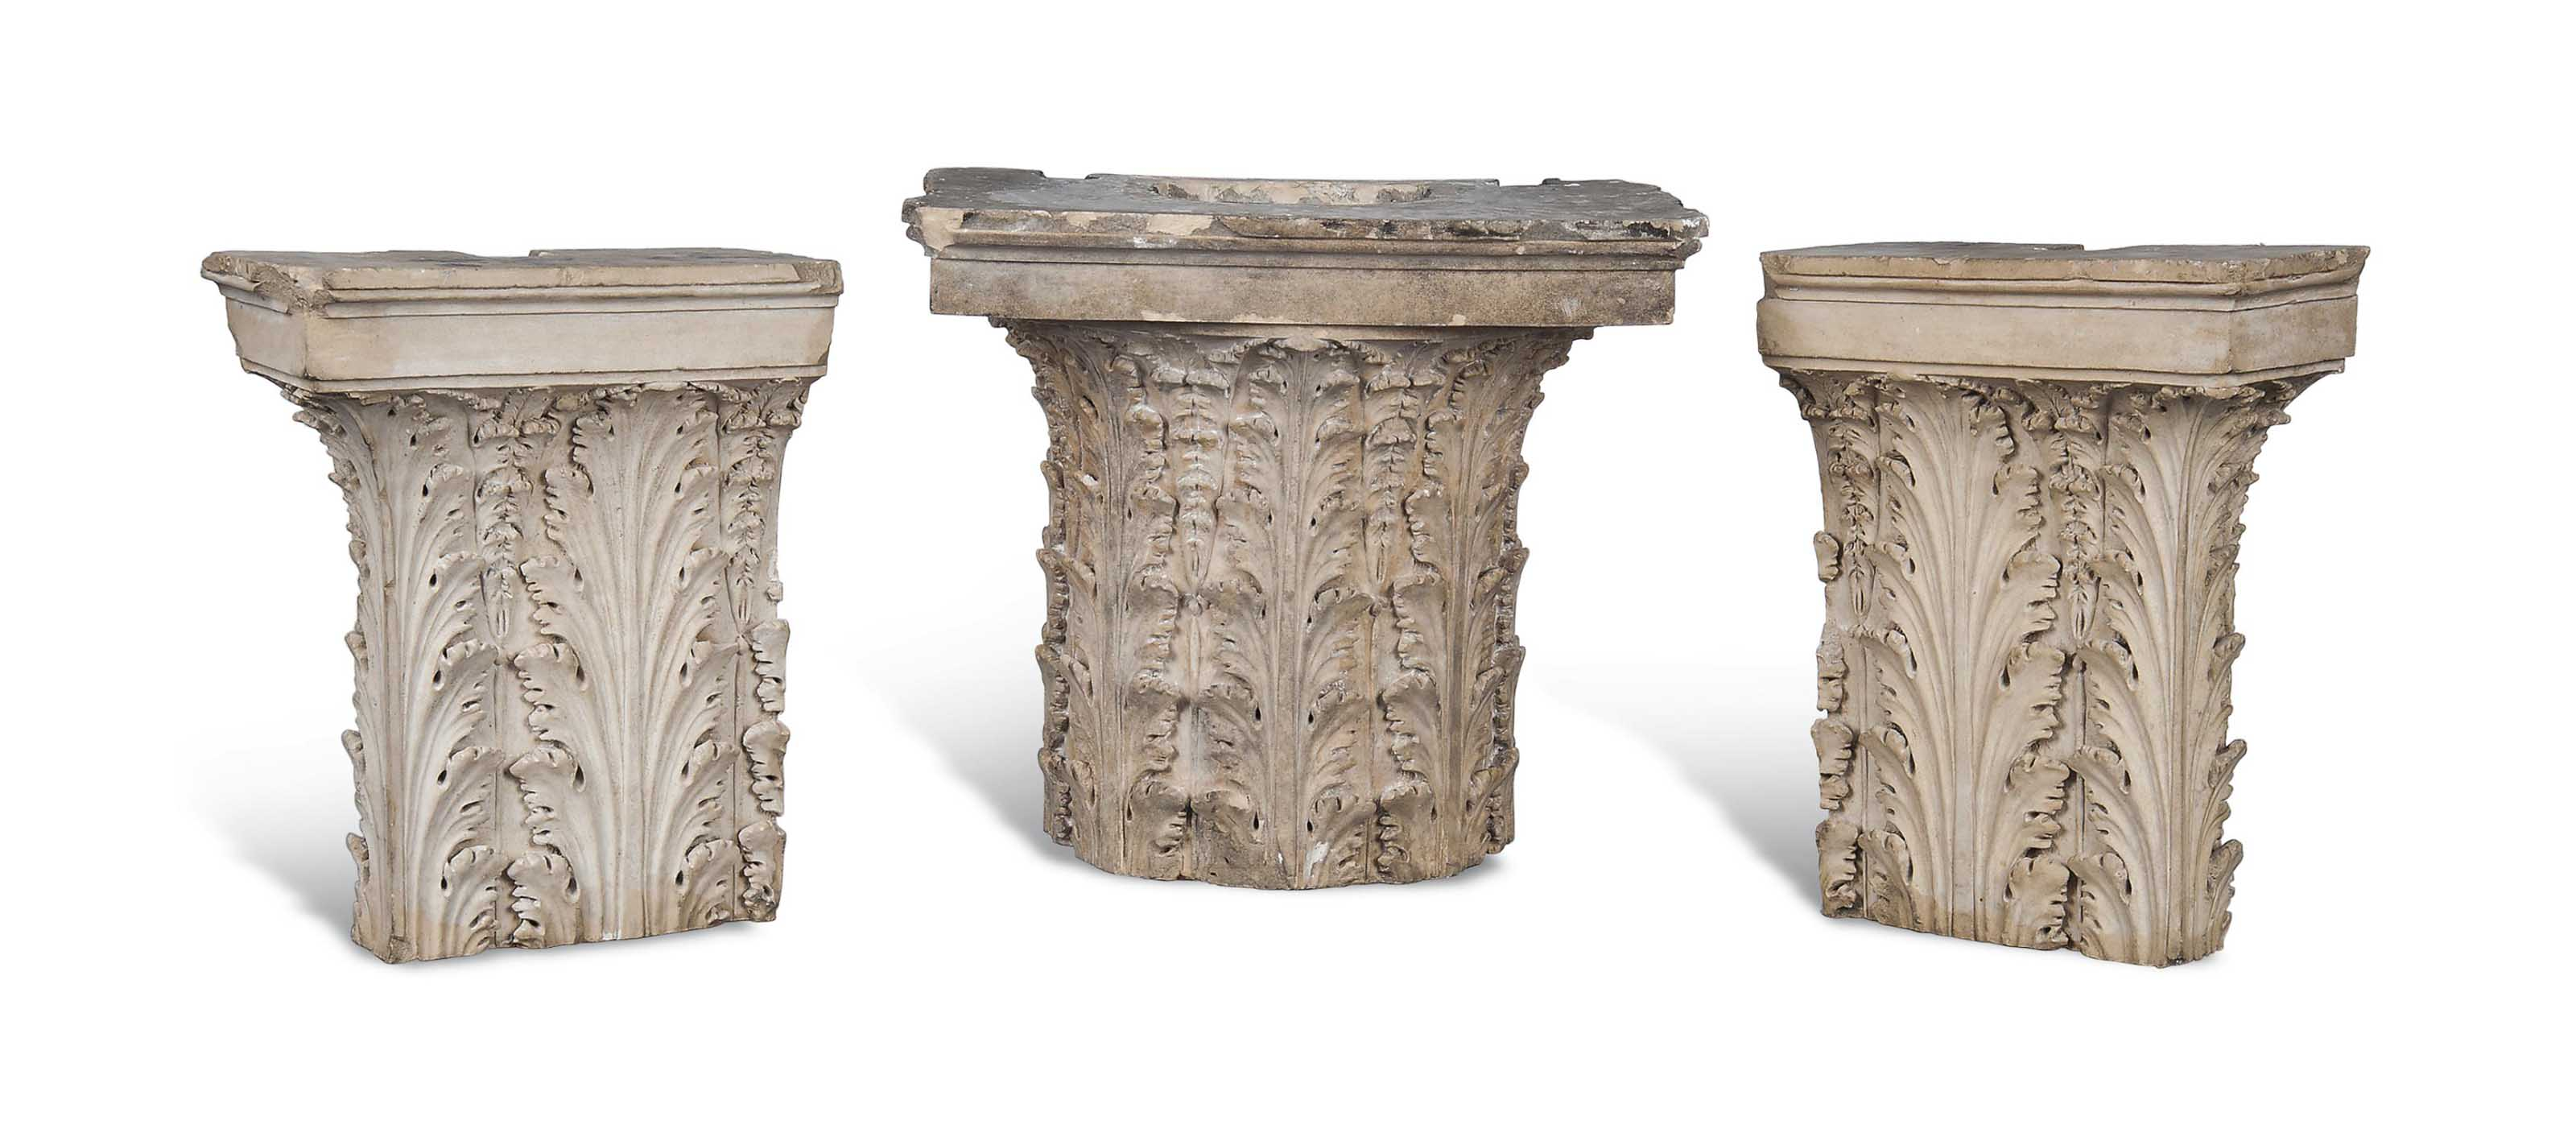 A GROUP OF THREE COADE STONE PILASTER CAPITALS